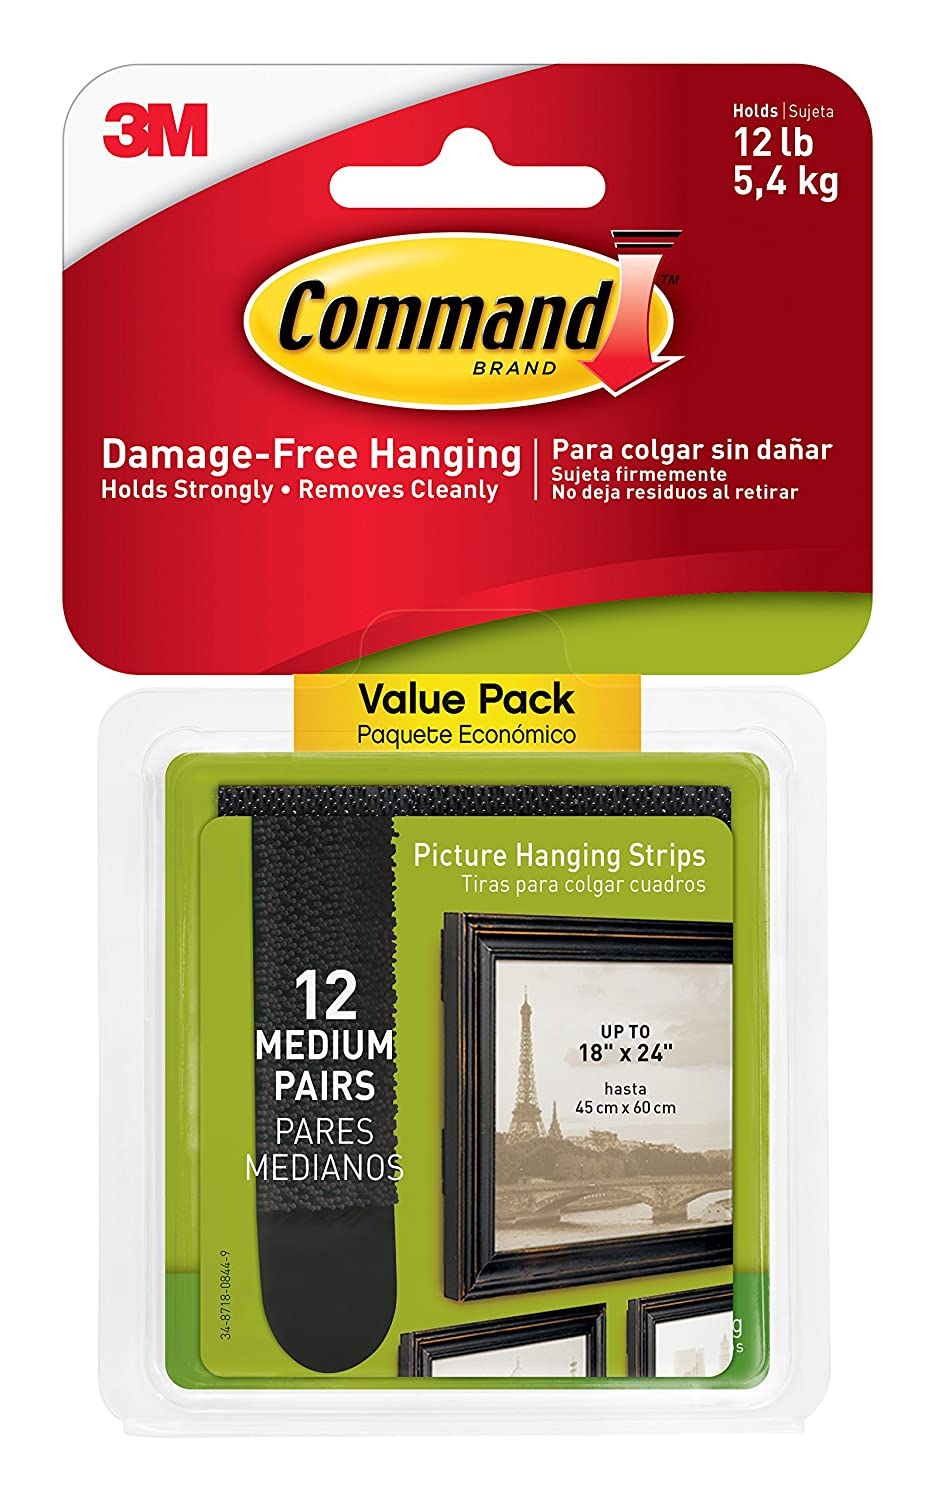 Command Damage-Free Picture Hanging Strips, White, 2 pairs hold 6 lbs, Decorate and Hang without Tools, Create Wall Collages, Indoor, 12 Pairs, Gallery Wall Pack (17204-12ES)